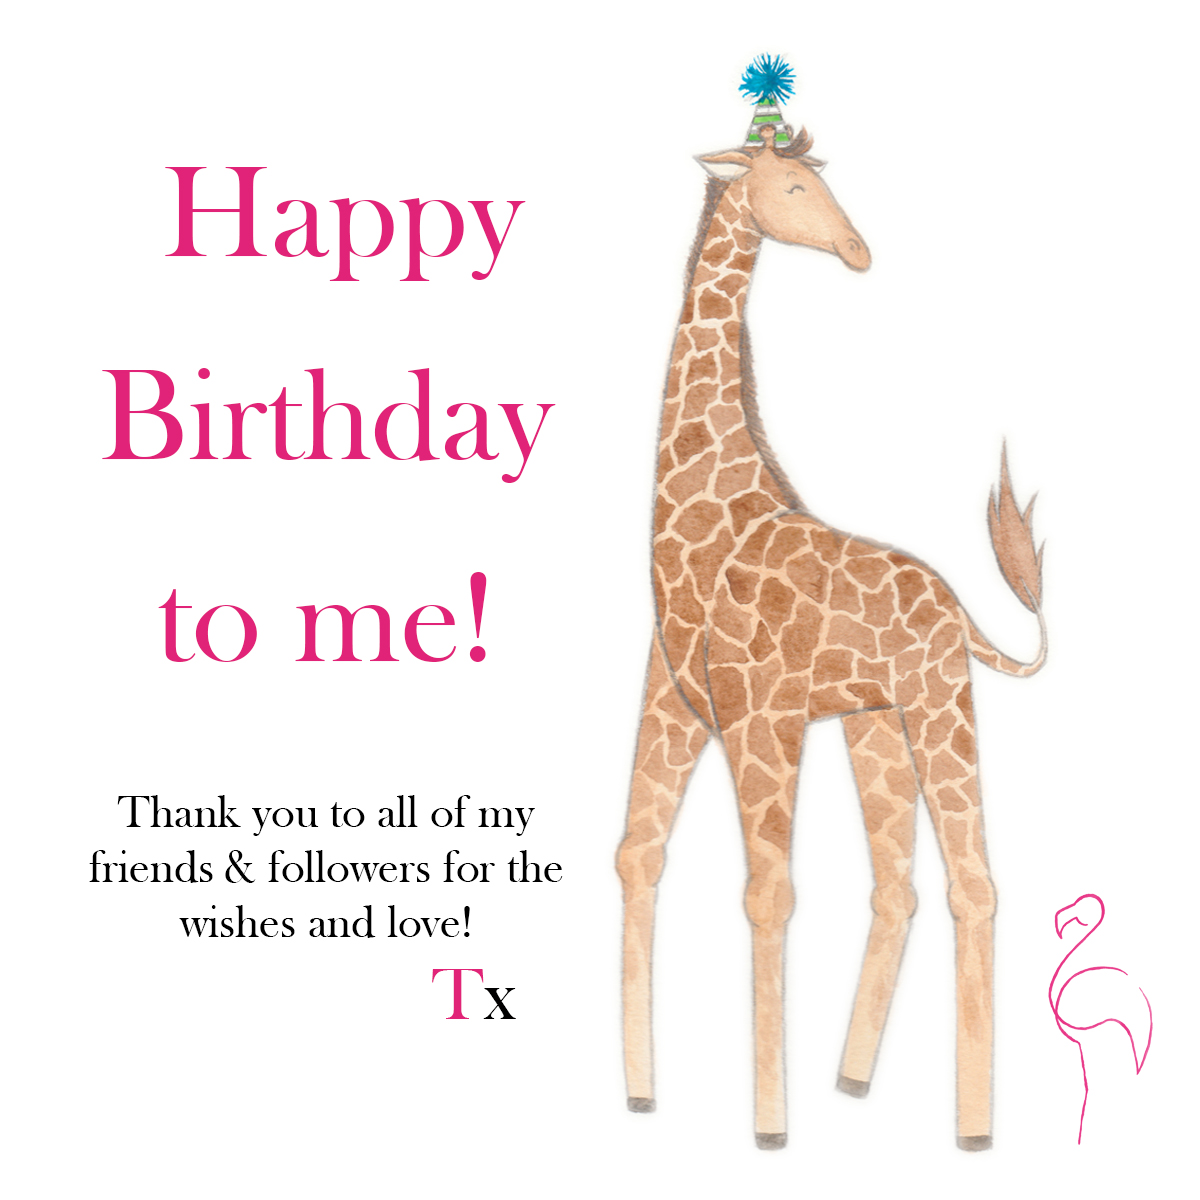 Dancing Giraffe Birthday.jpg